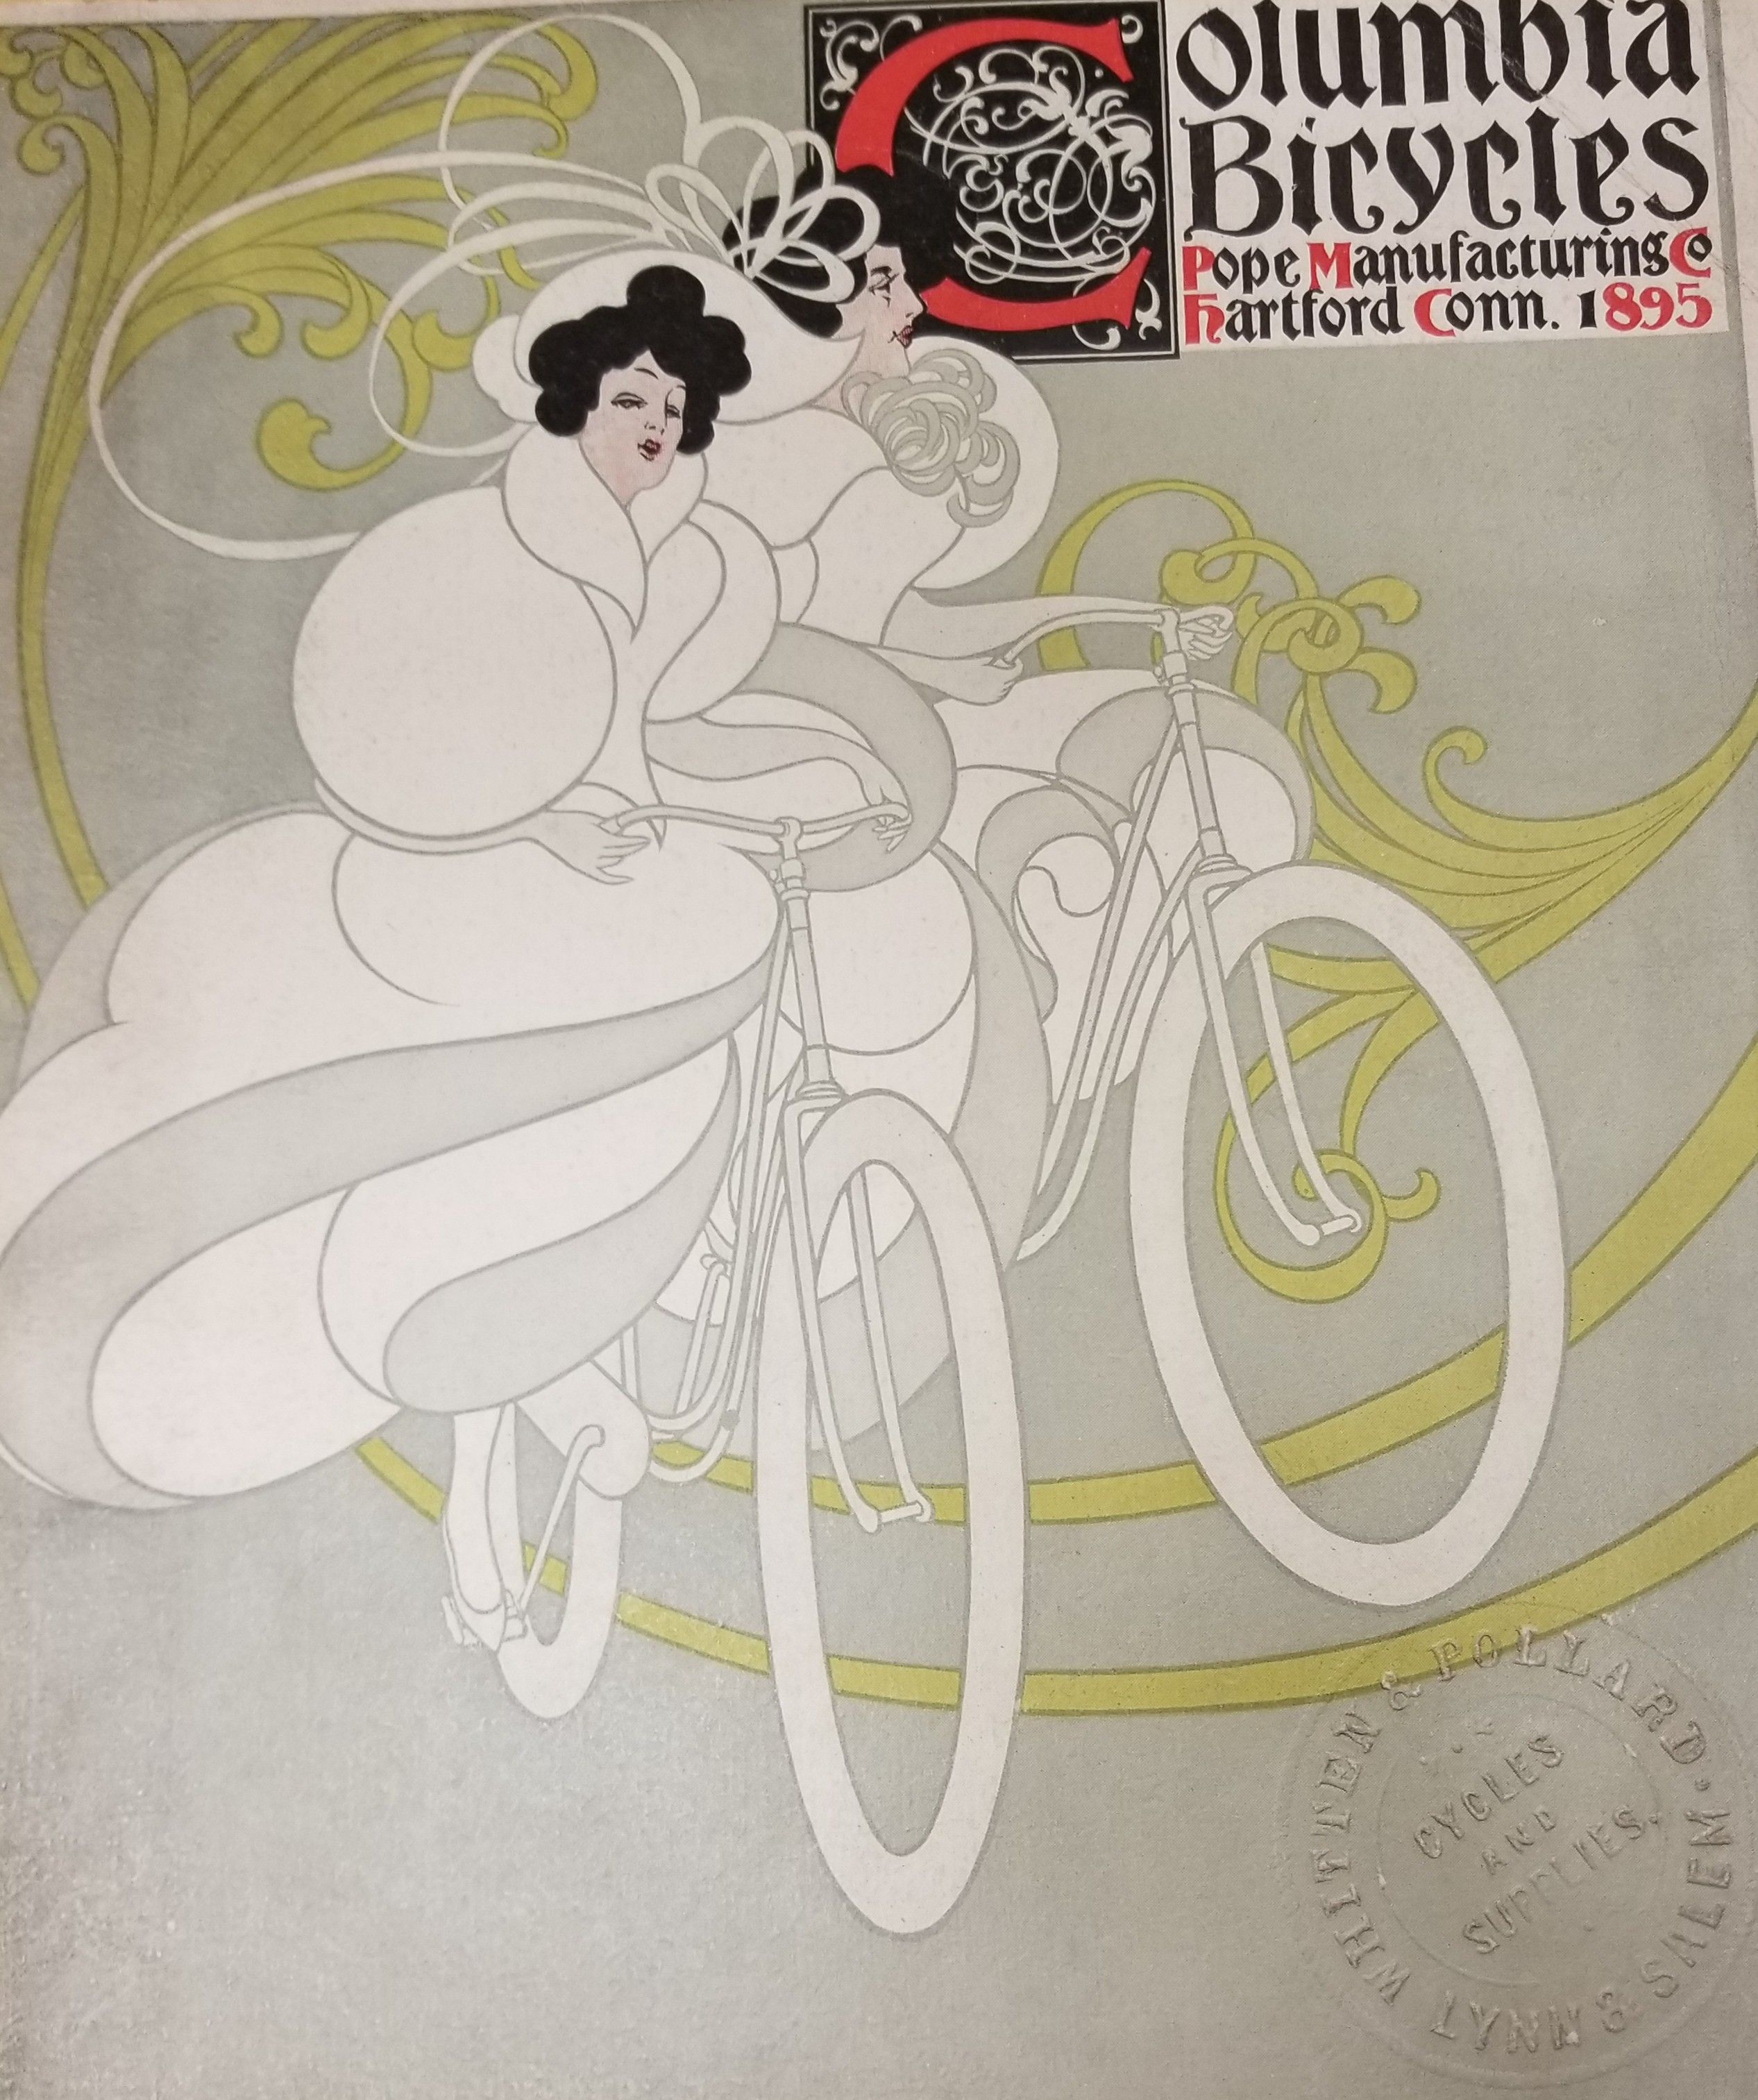 advertising bicycles to the new england